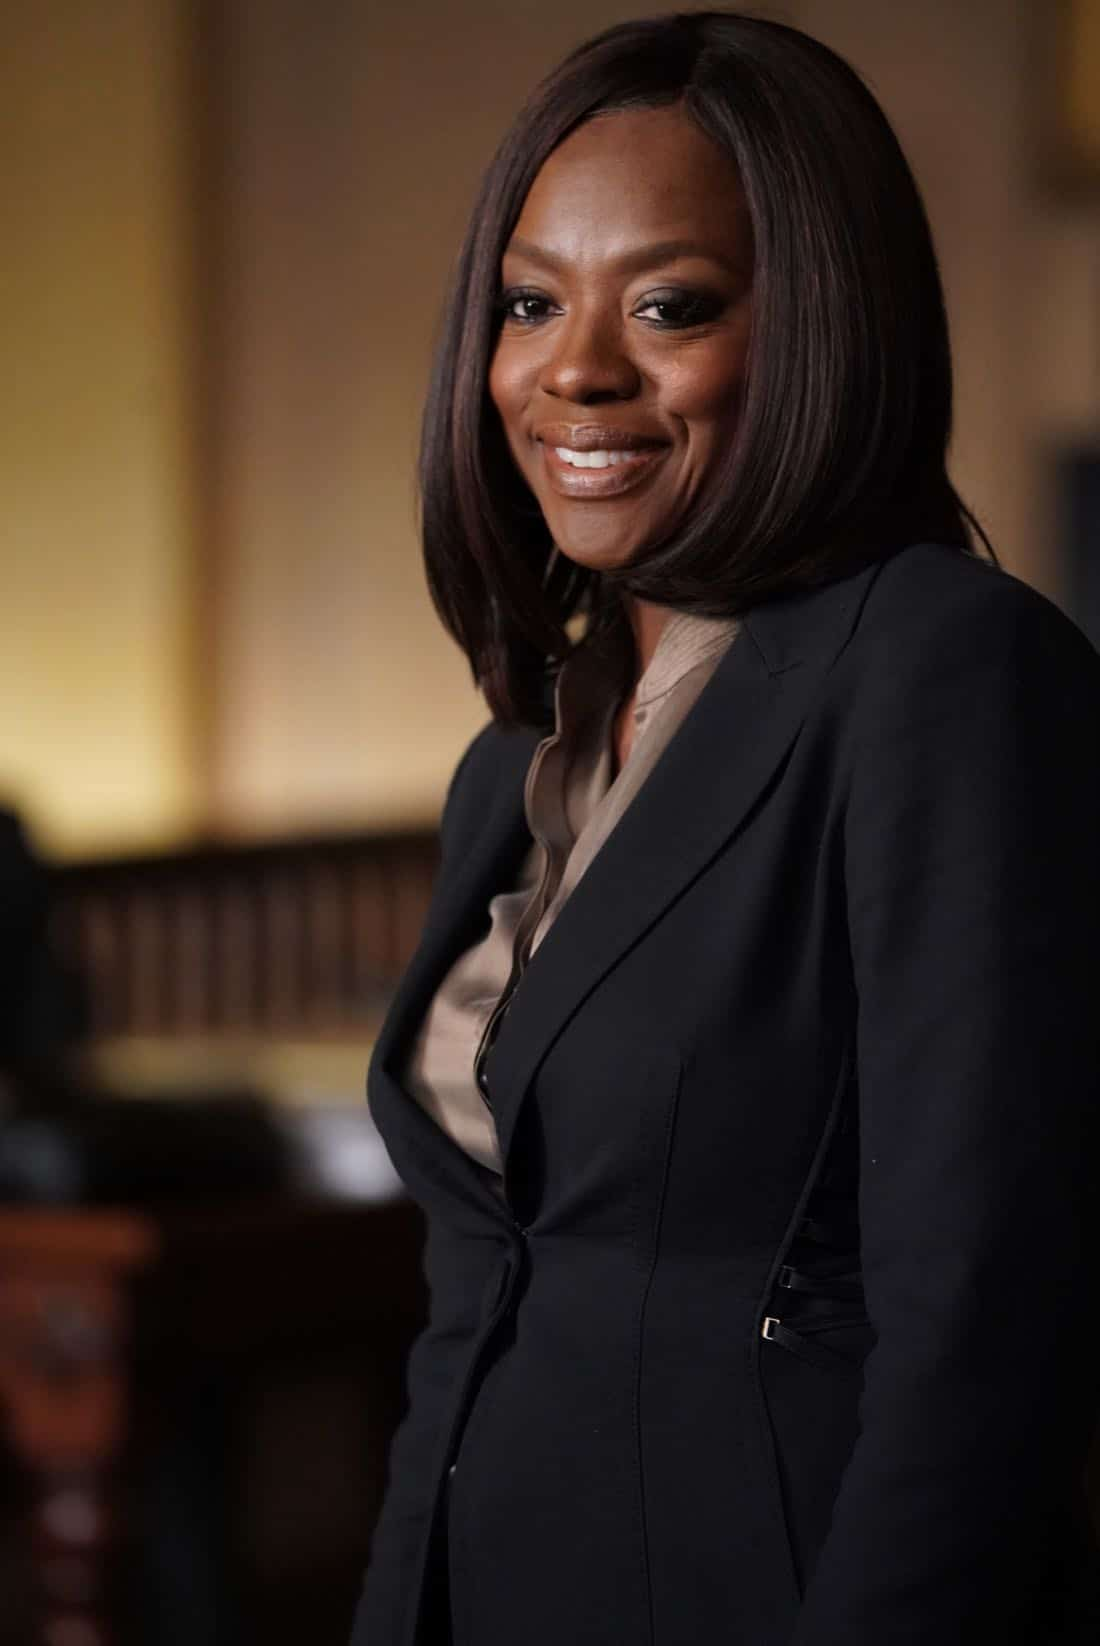 "HOW TO GET AWAY WITH MURDER - ""It's For the Greater Good"" - Annalise takes on a case for the greater good and quickly realizes the stakes are much higher than she originally thought. Meanwhile, Laurel asks Michaela to help get information regarding Wes' death and Connor makes a major life decision that is not supported by the group. In a flash-forward, a surprising confrontation during the night of the crime is revealed, on ""How to Get Away with Murder,"" THURSDAY, OCTOBER 12 (10:00-11:00 p.m. EDT), on The ABC Television Network. (ABC/Mitch Haaseth) VIOLA DAVIS"